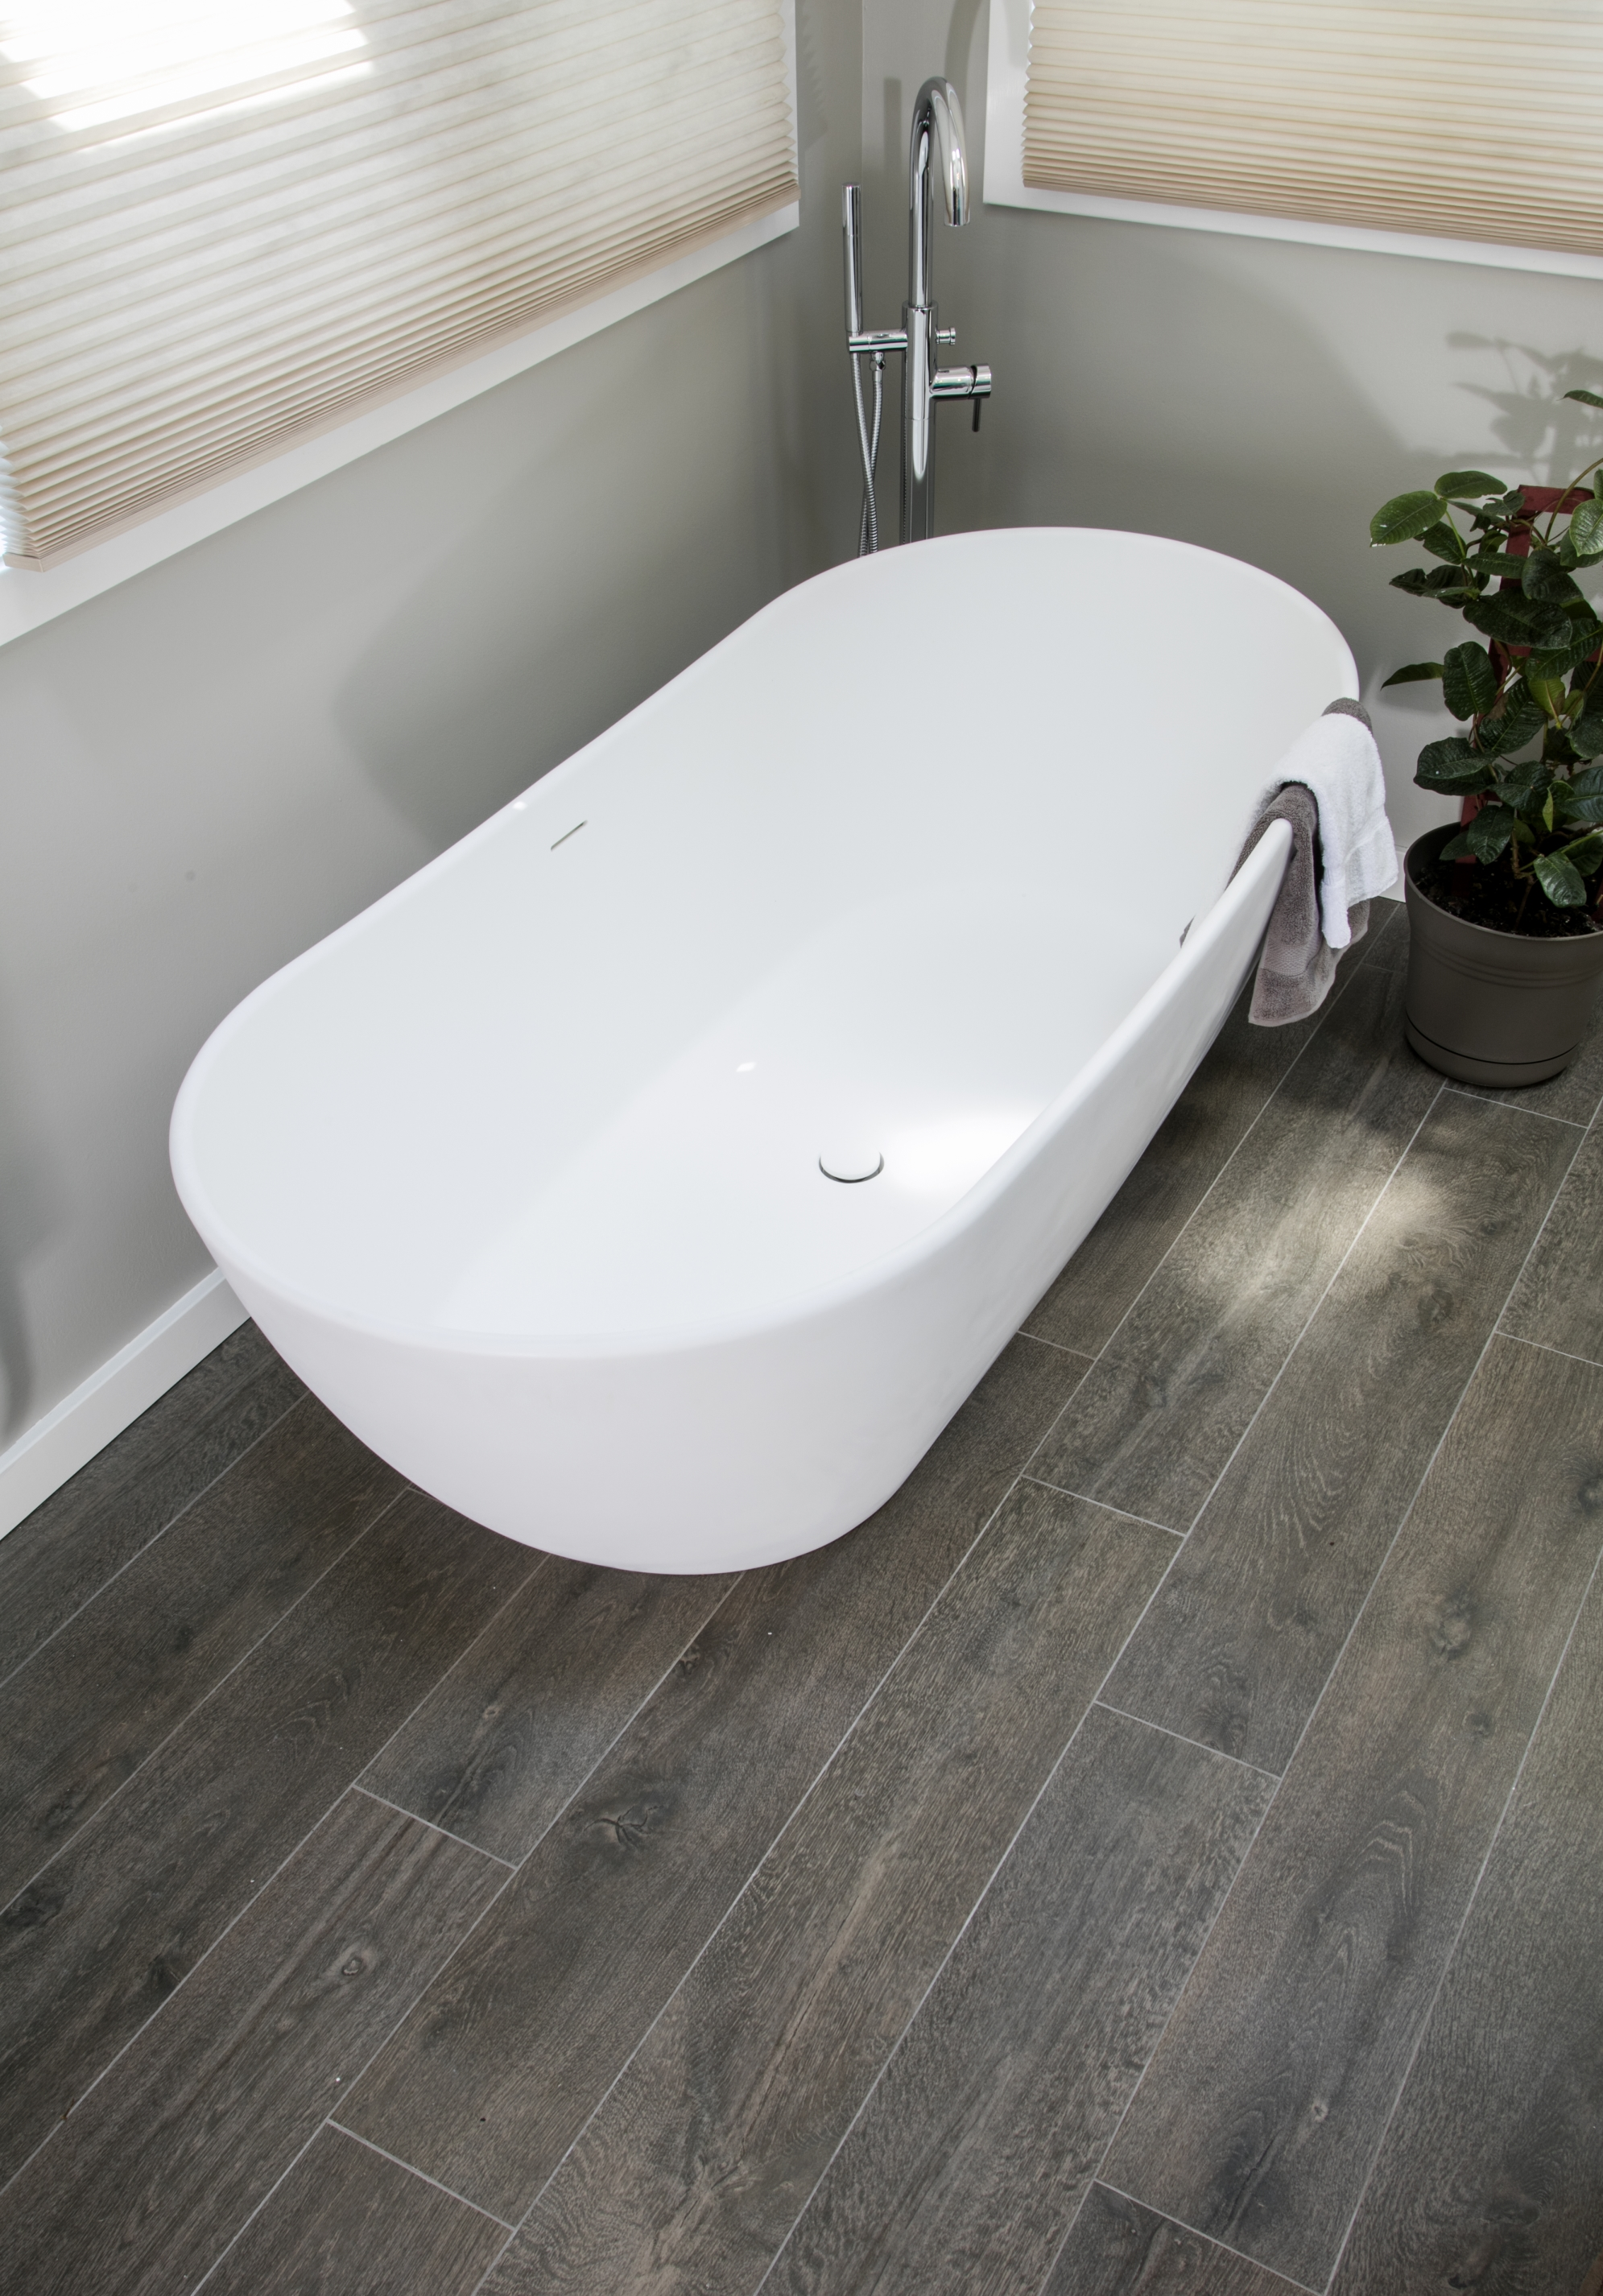 Spa Bathrooms Designs & Remodeling | HTRenovations